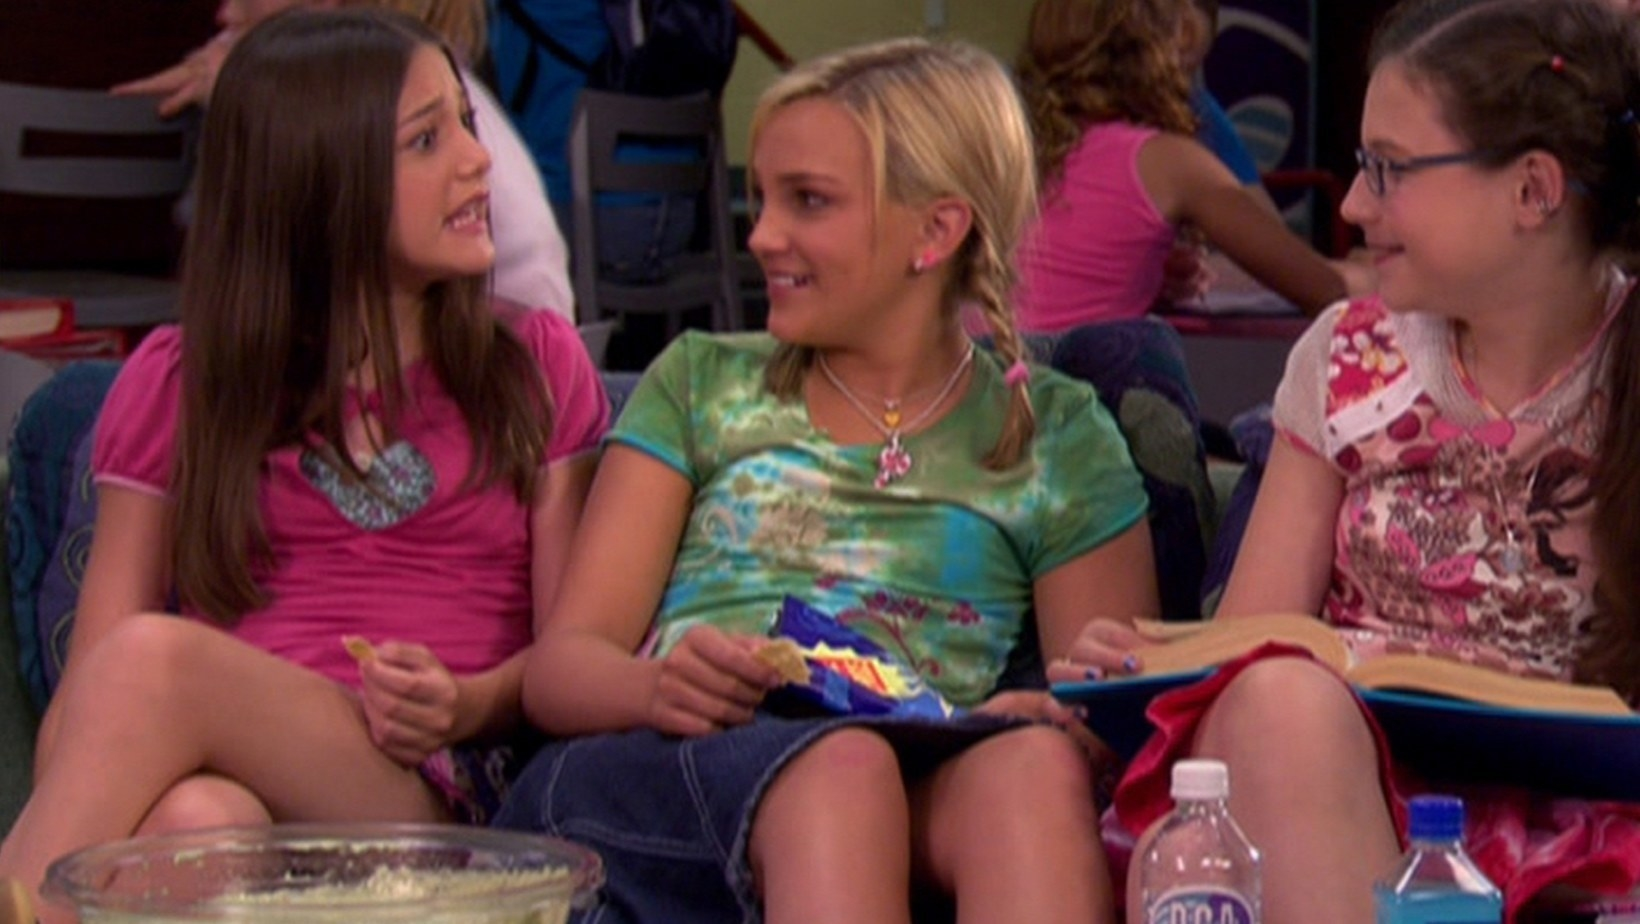 Nicole, Zoey, and Quinn sitting on a couch with books and magazines in their laps